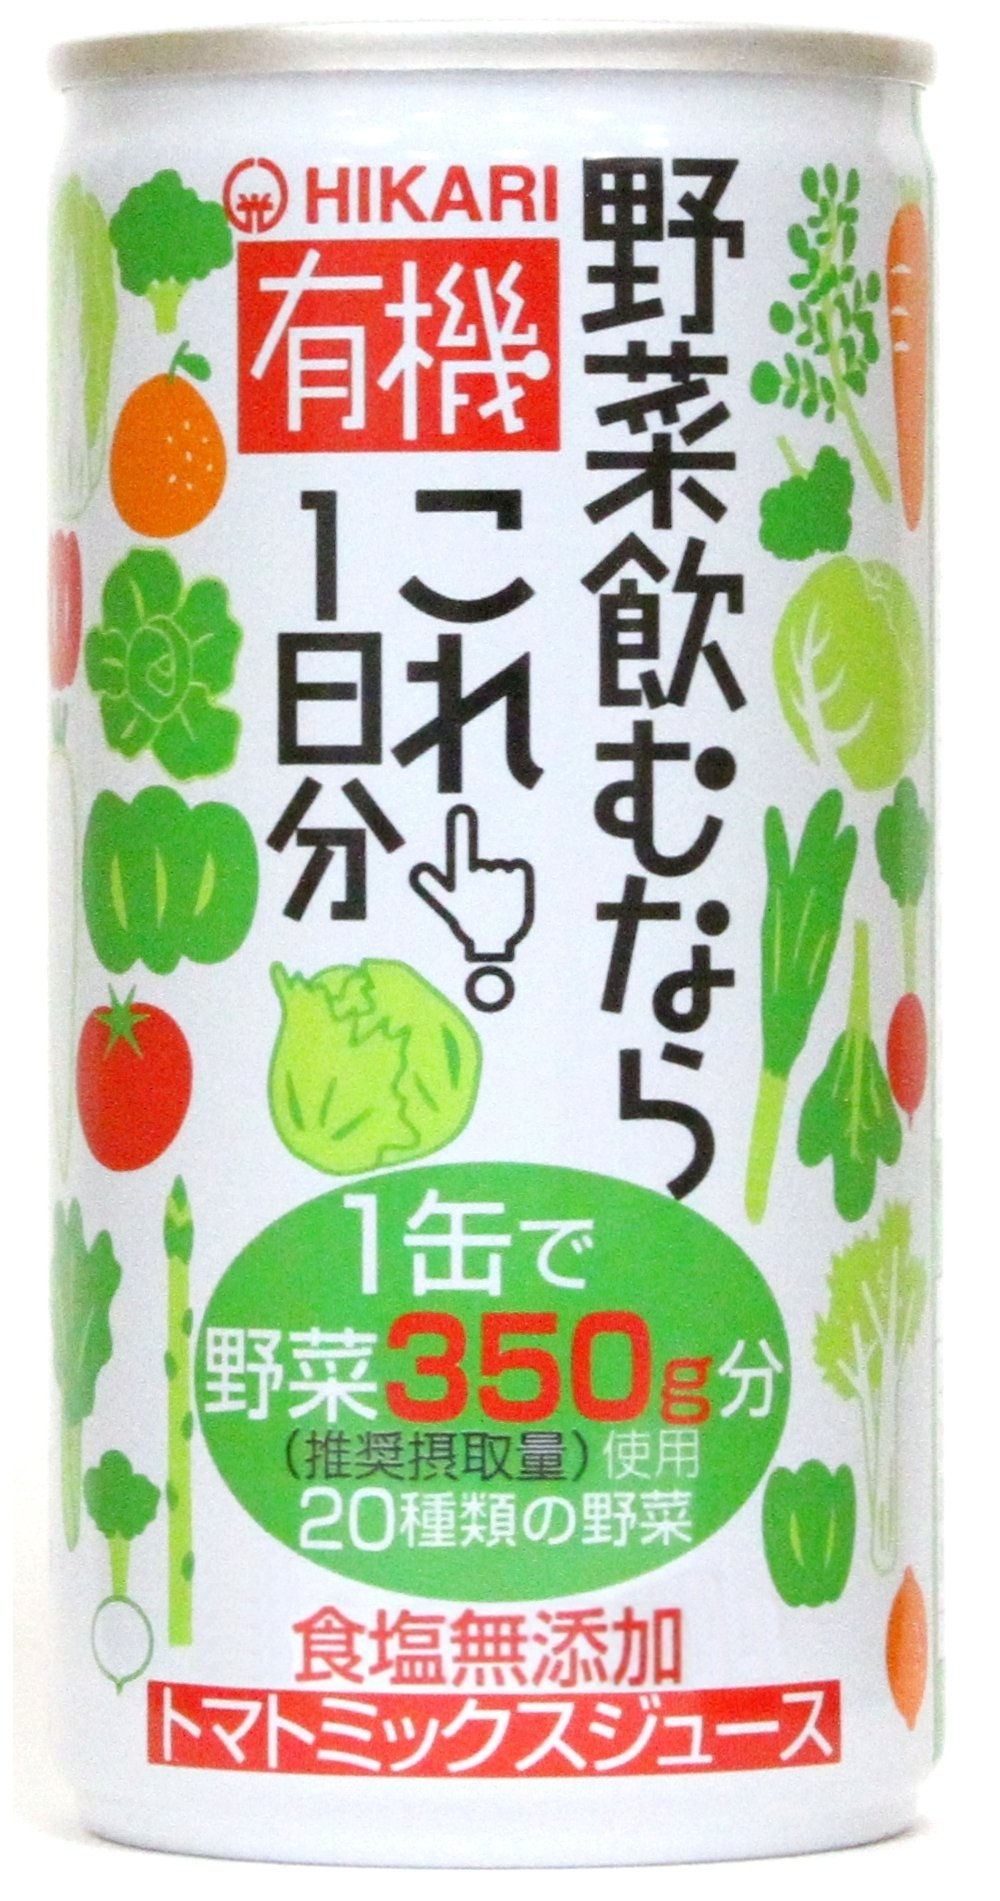 This if drink light food organic vegetables! One day 190g ~ 30 this